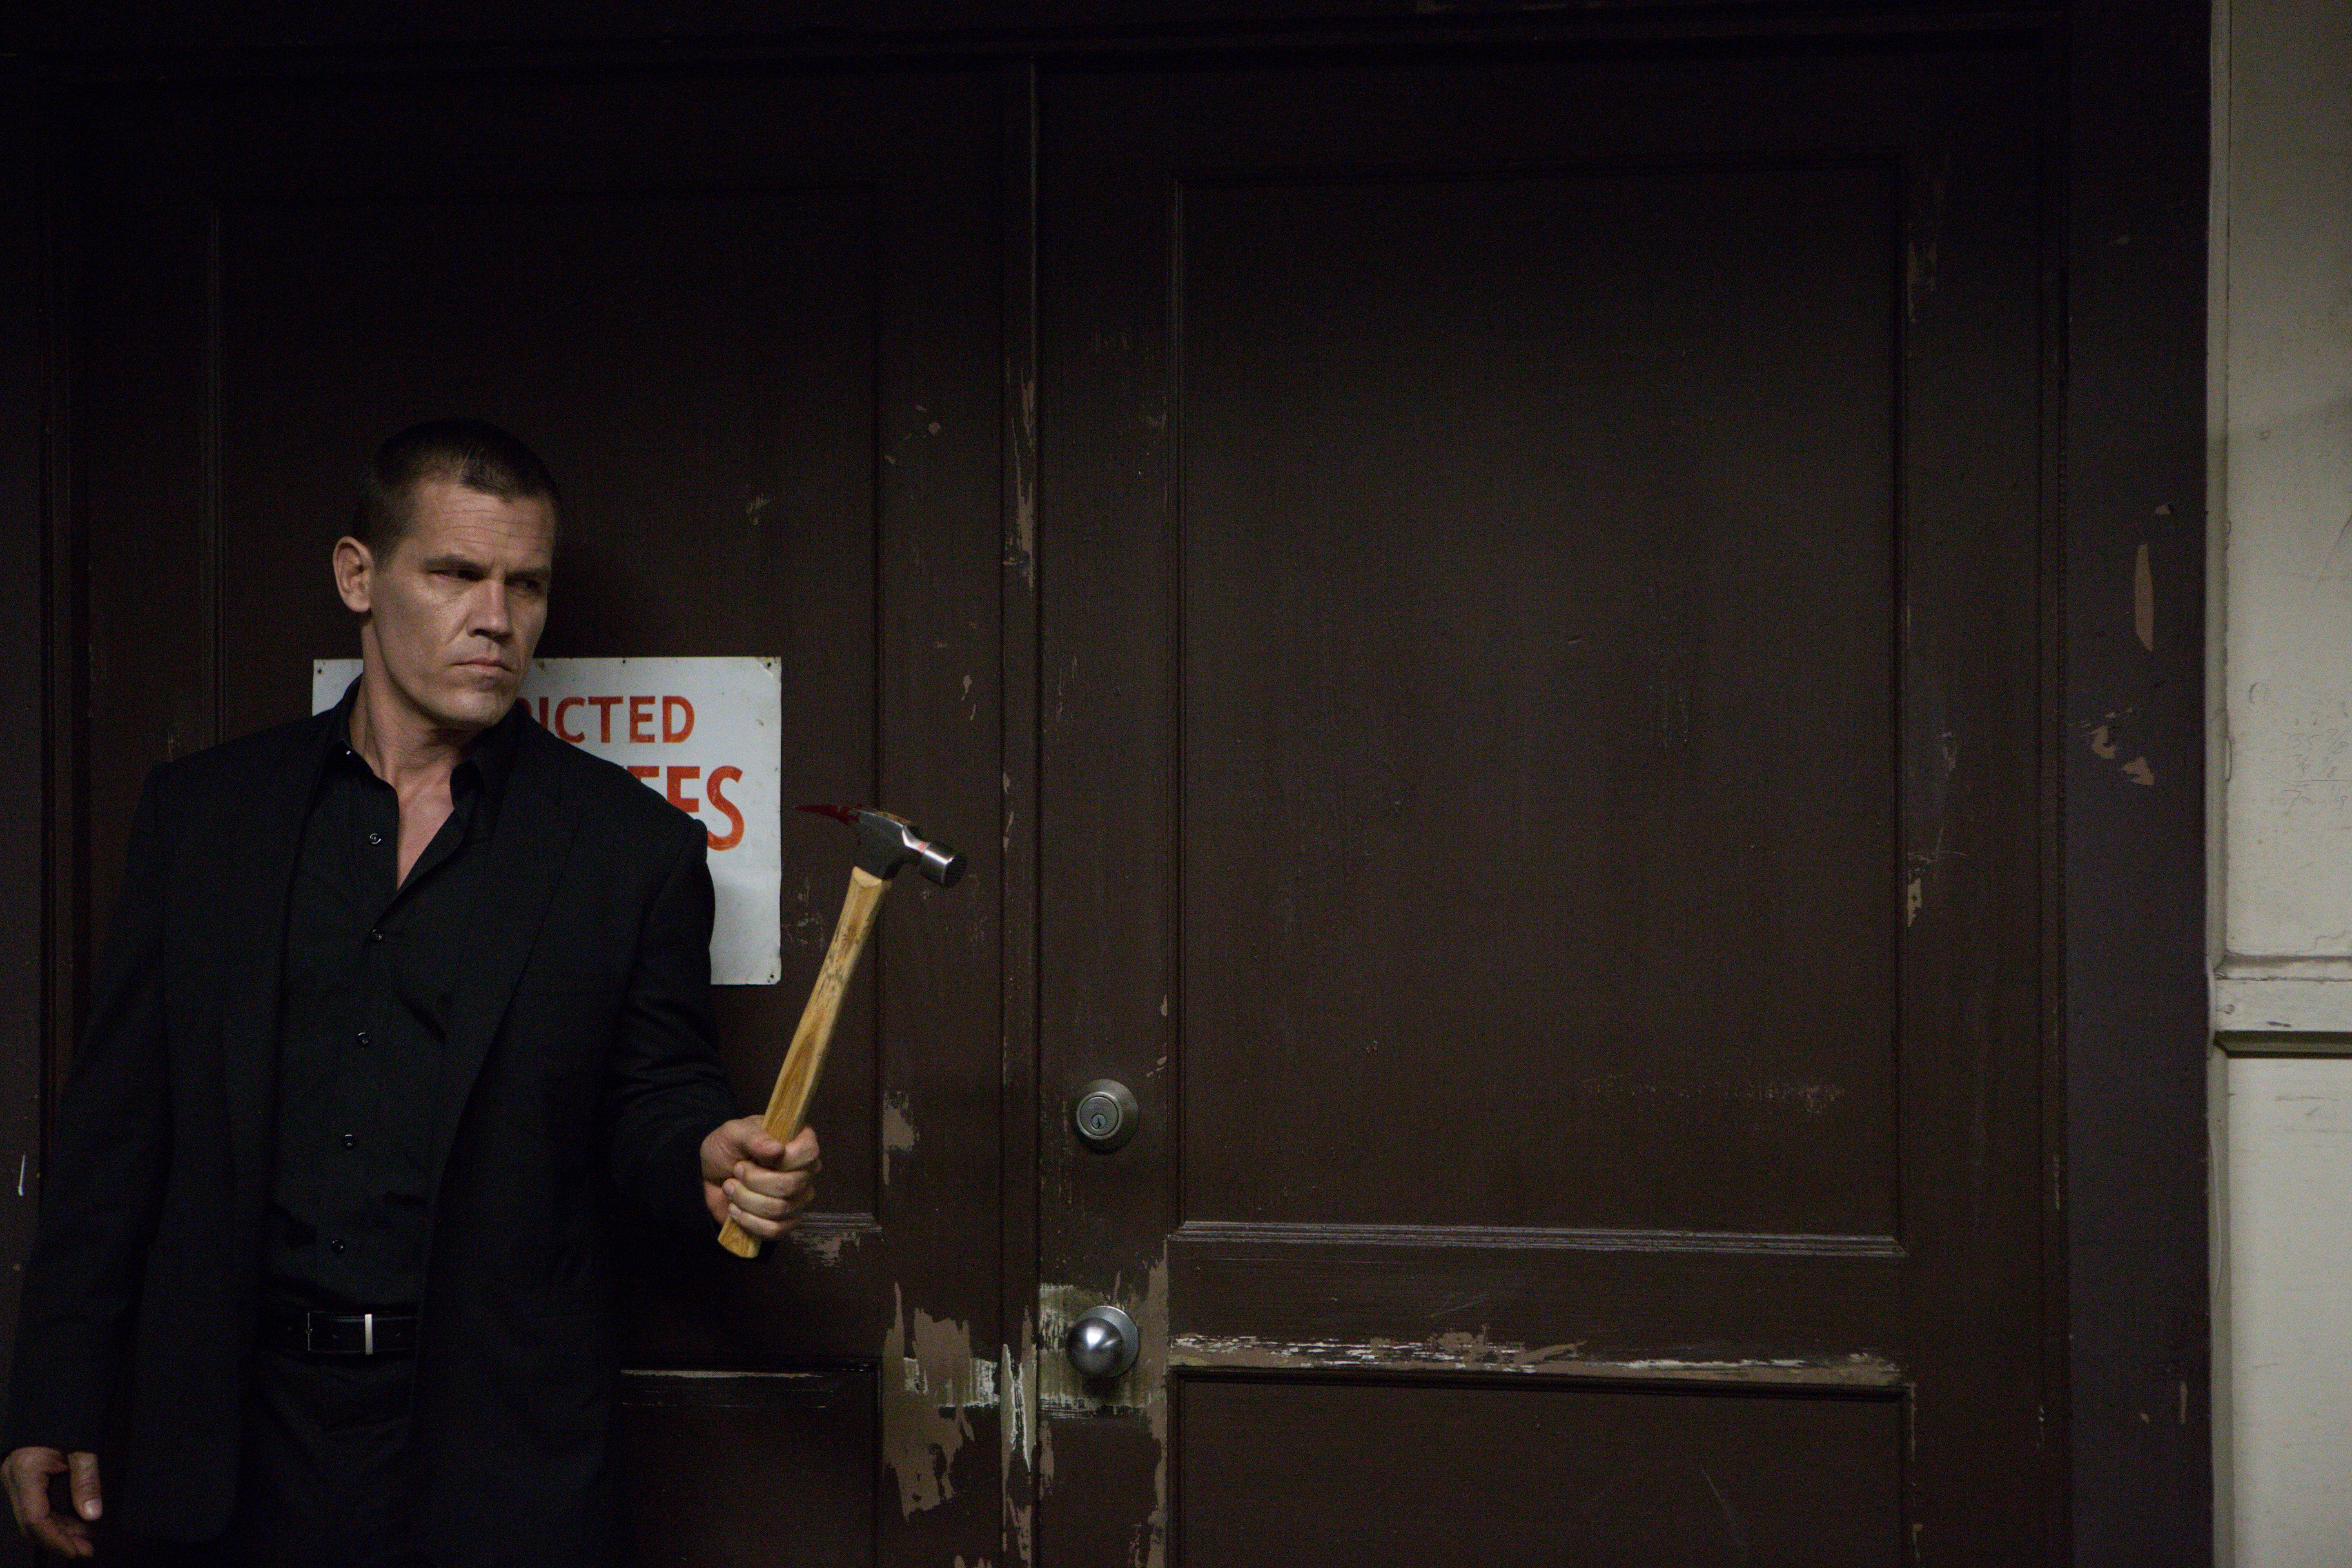 New Images from Spike Lee's OLDBOY Featuring Josh Brolin ...